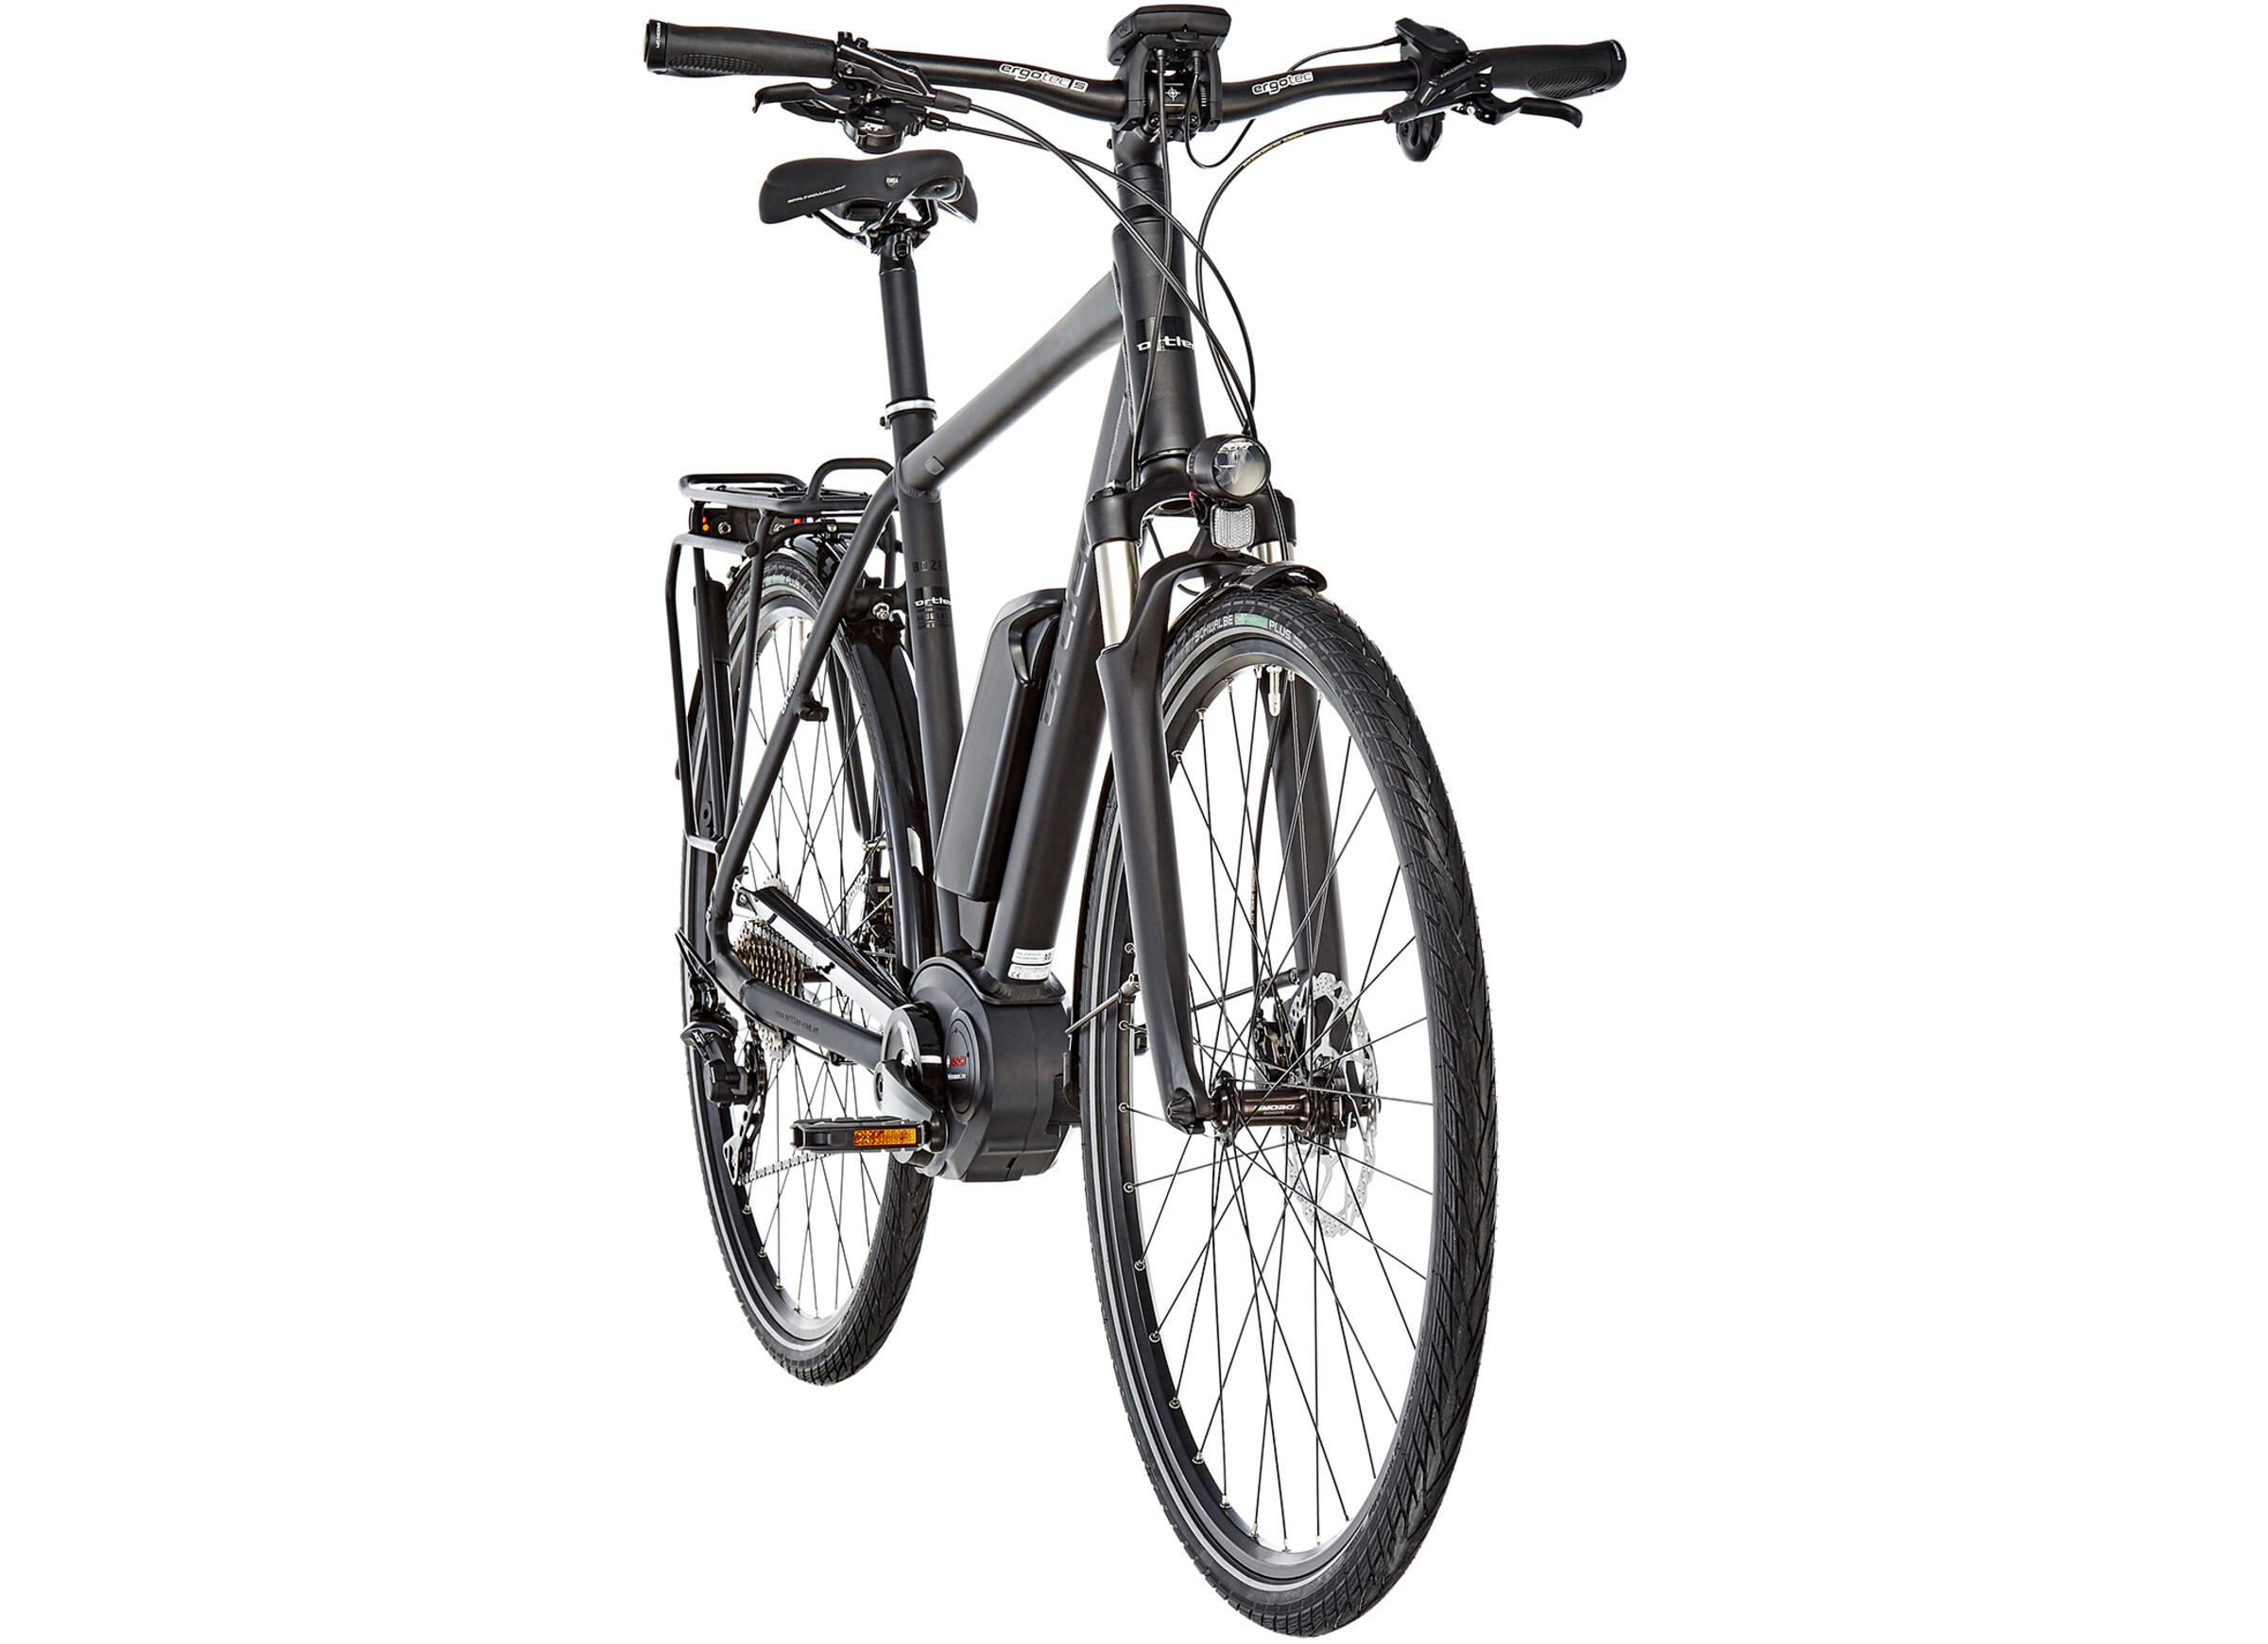 ortler bozen premium e trekking bike black at. Black Bedroom Furniture Sets. Home Design Ideas